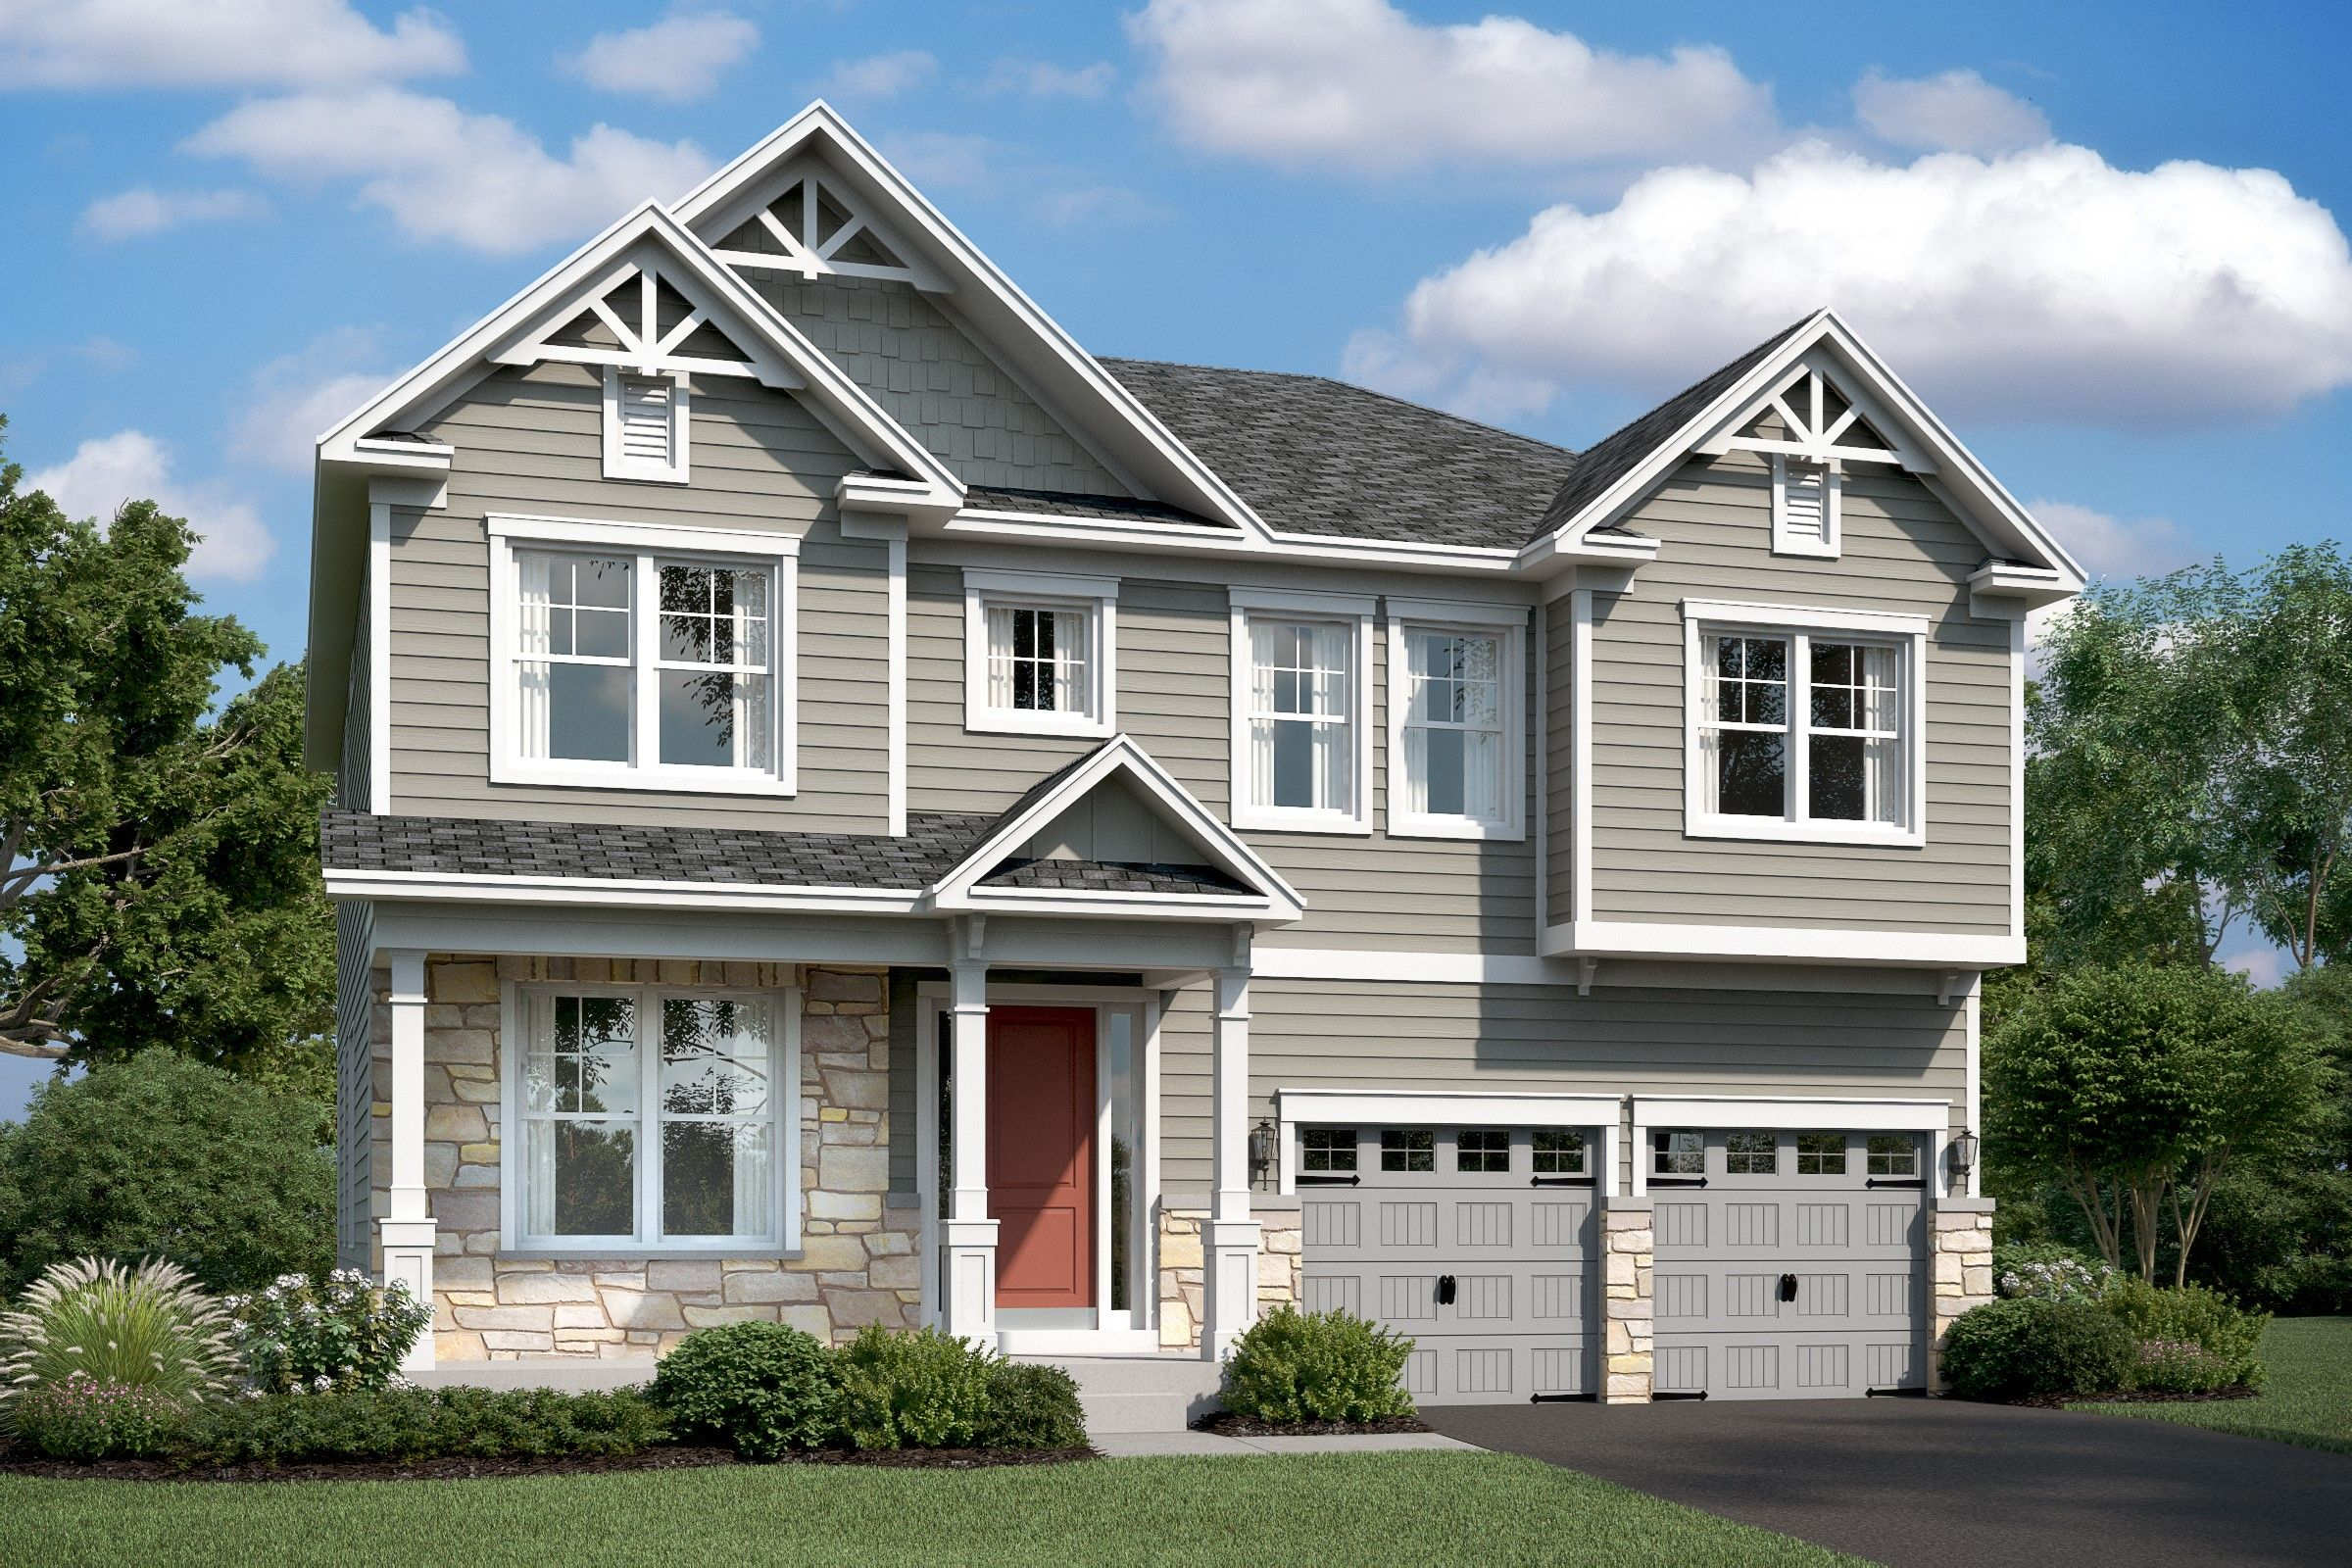 Single Family for Active at Eden Terrace - Tomasen 110 Forest Avenue Catonsville, Maryland 21228 United States